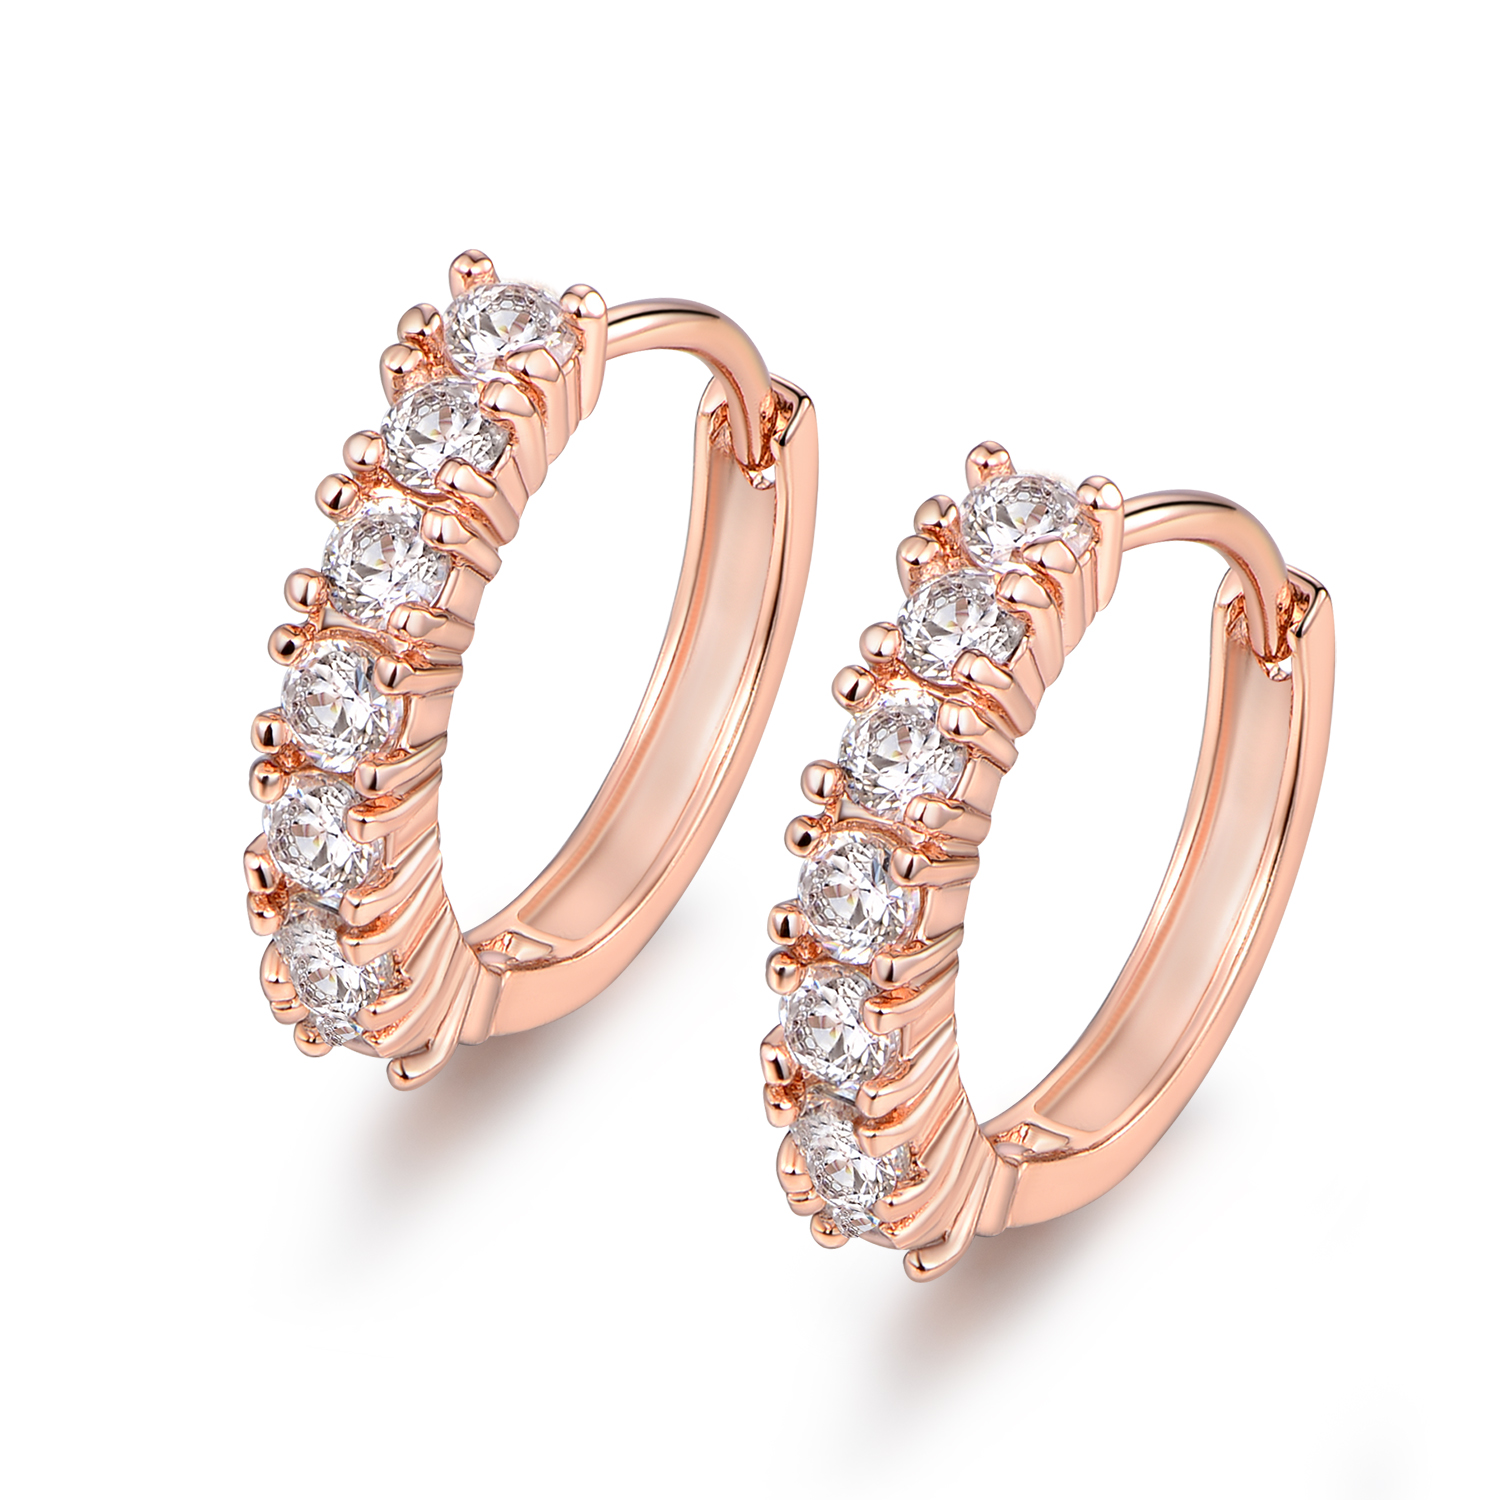 New Las 18k Rose Gold Filled White Topaz Crystal Hoop Earrings Weddings Party